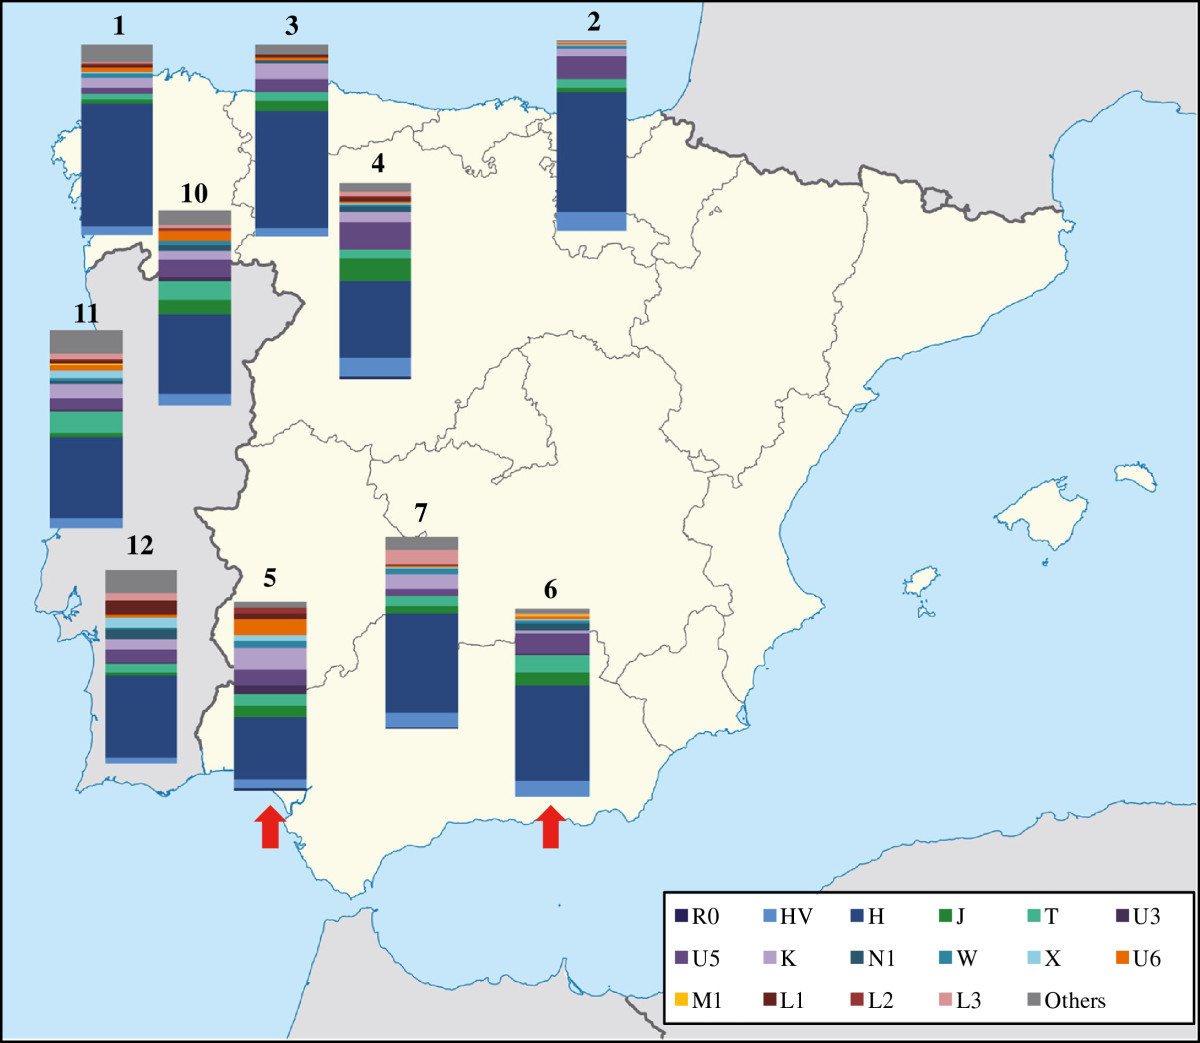 Human maternal heritage in Andalusia (Spain): its